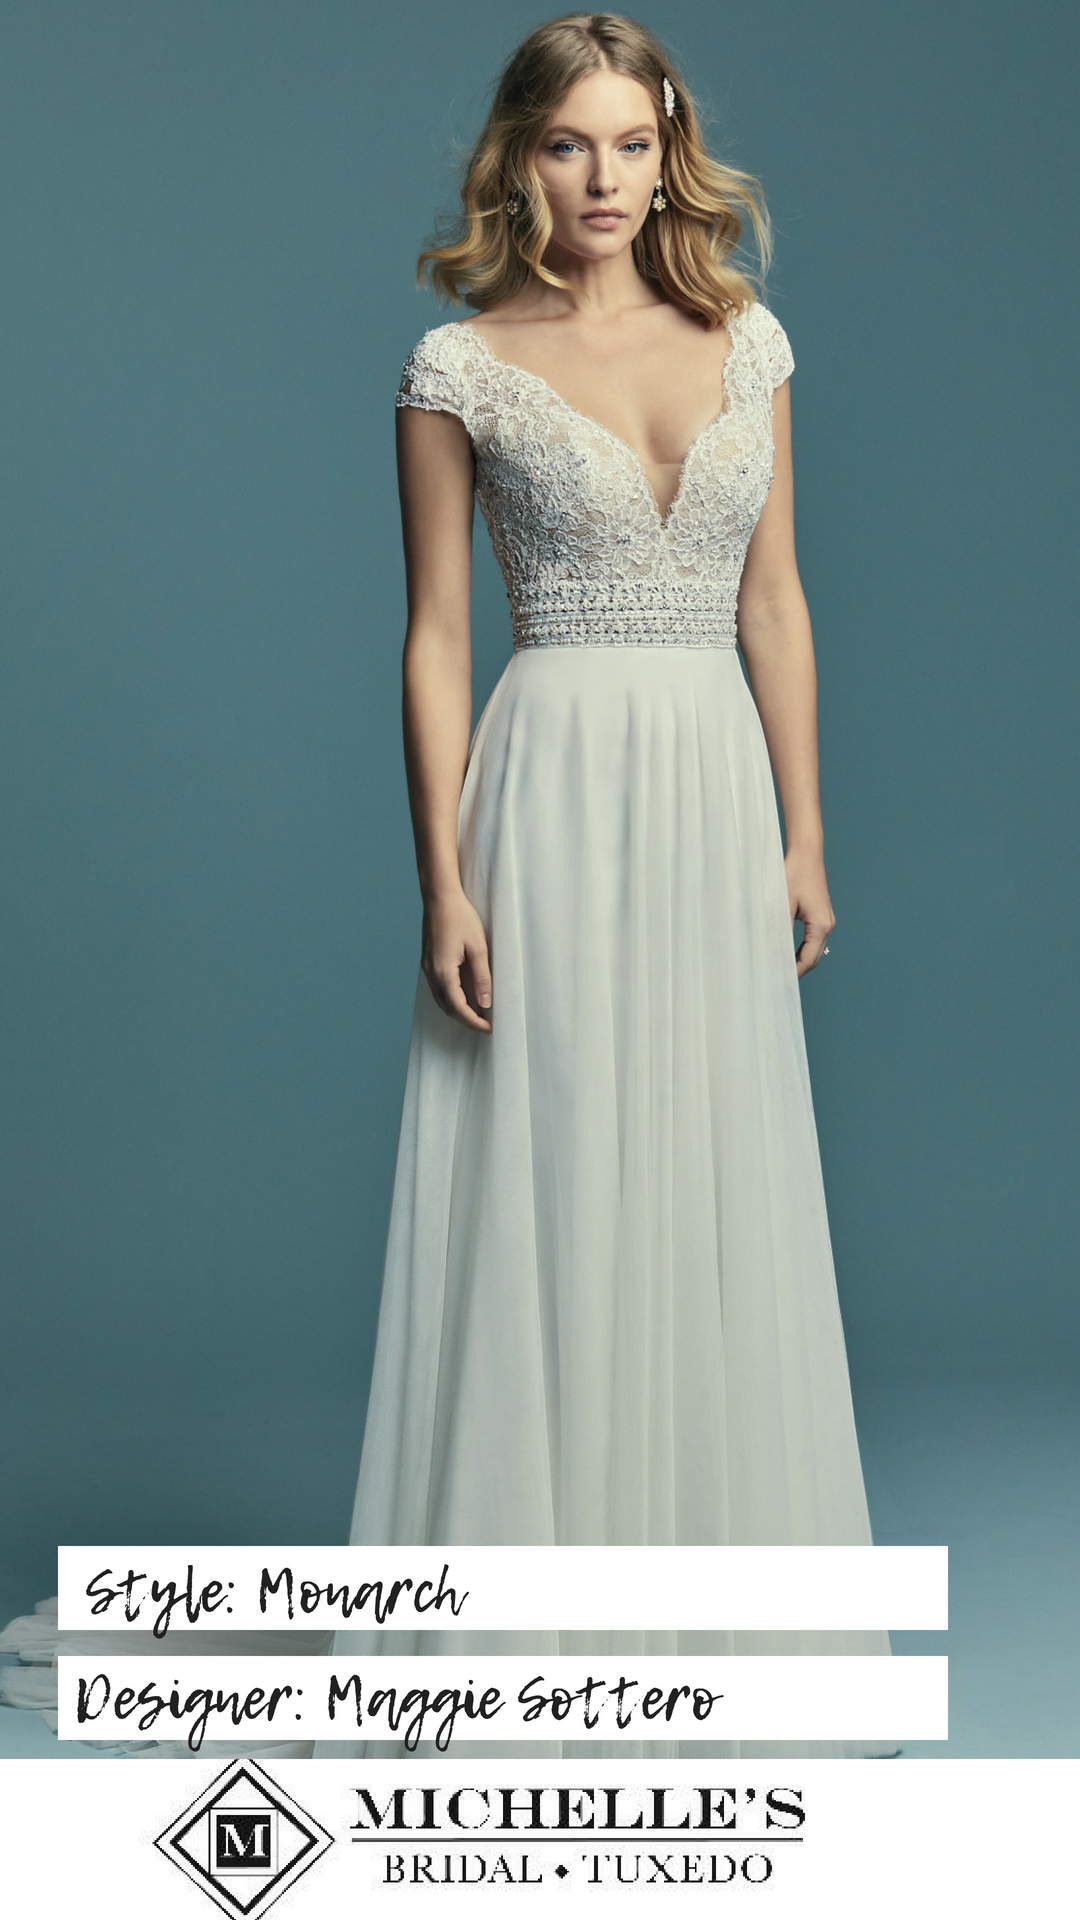 Bridal maggie sotterosottero and midgley bridal pinterest